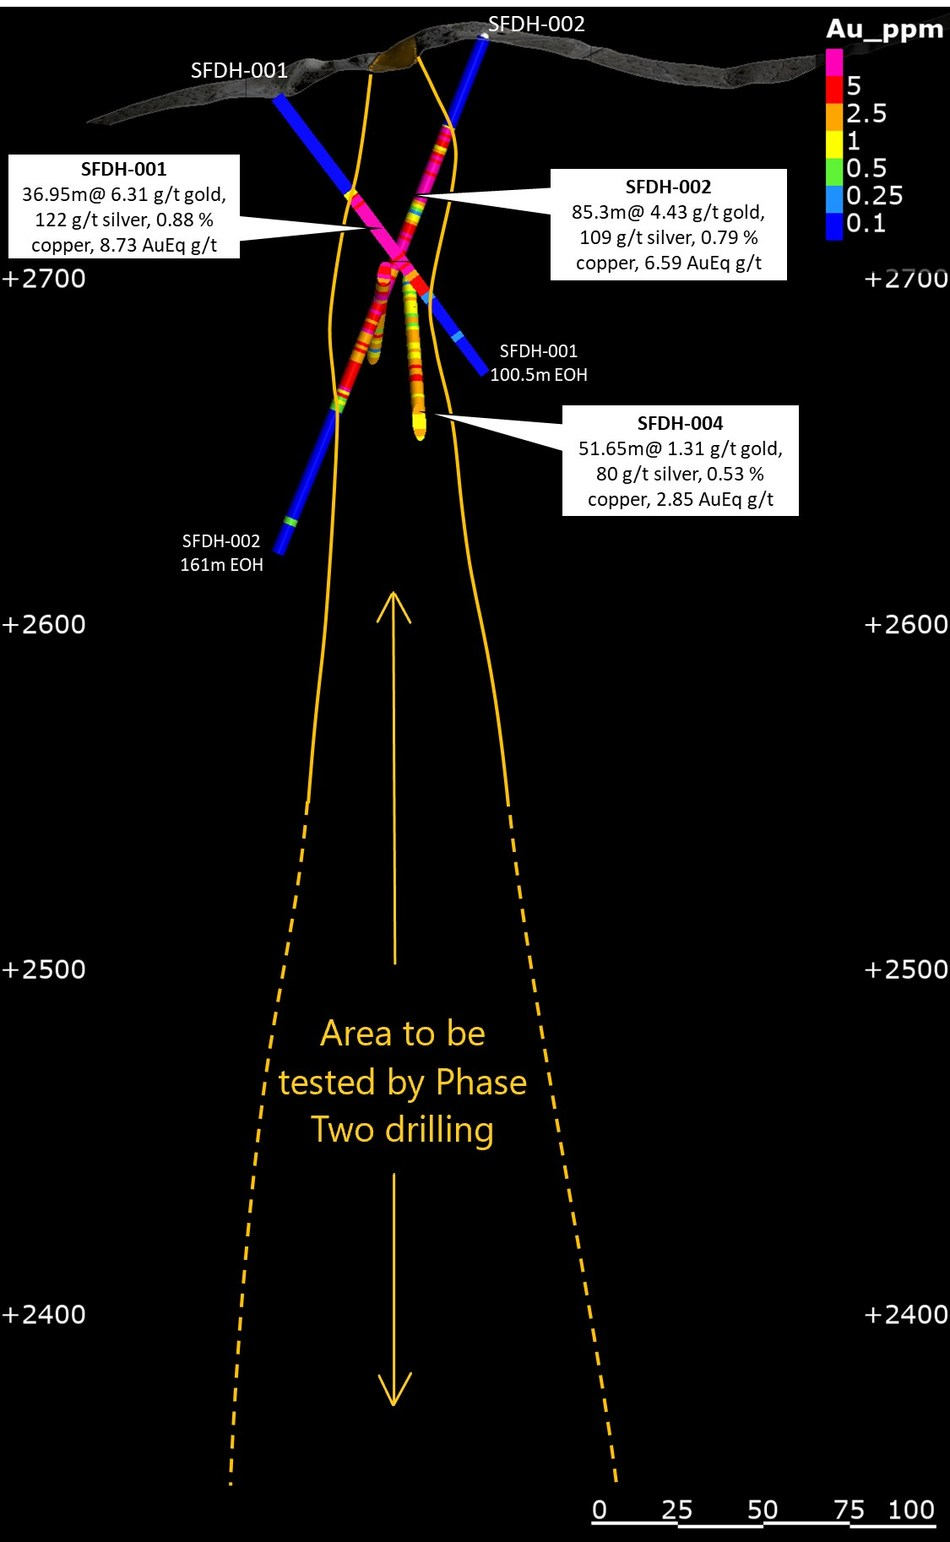 Figure 1: Projected extension at depth of the SFdLA breccia pipe. Tourmaline breccias typically form vertically-extensive pipes that increase in diameter with depth, and our Phase 2 drilling will target beneath our 2019 drill intersections, testing to a depth of ~400m below surface. (CNW Group/Turmalina Metals Corp.)